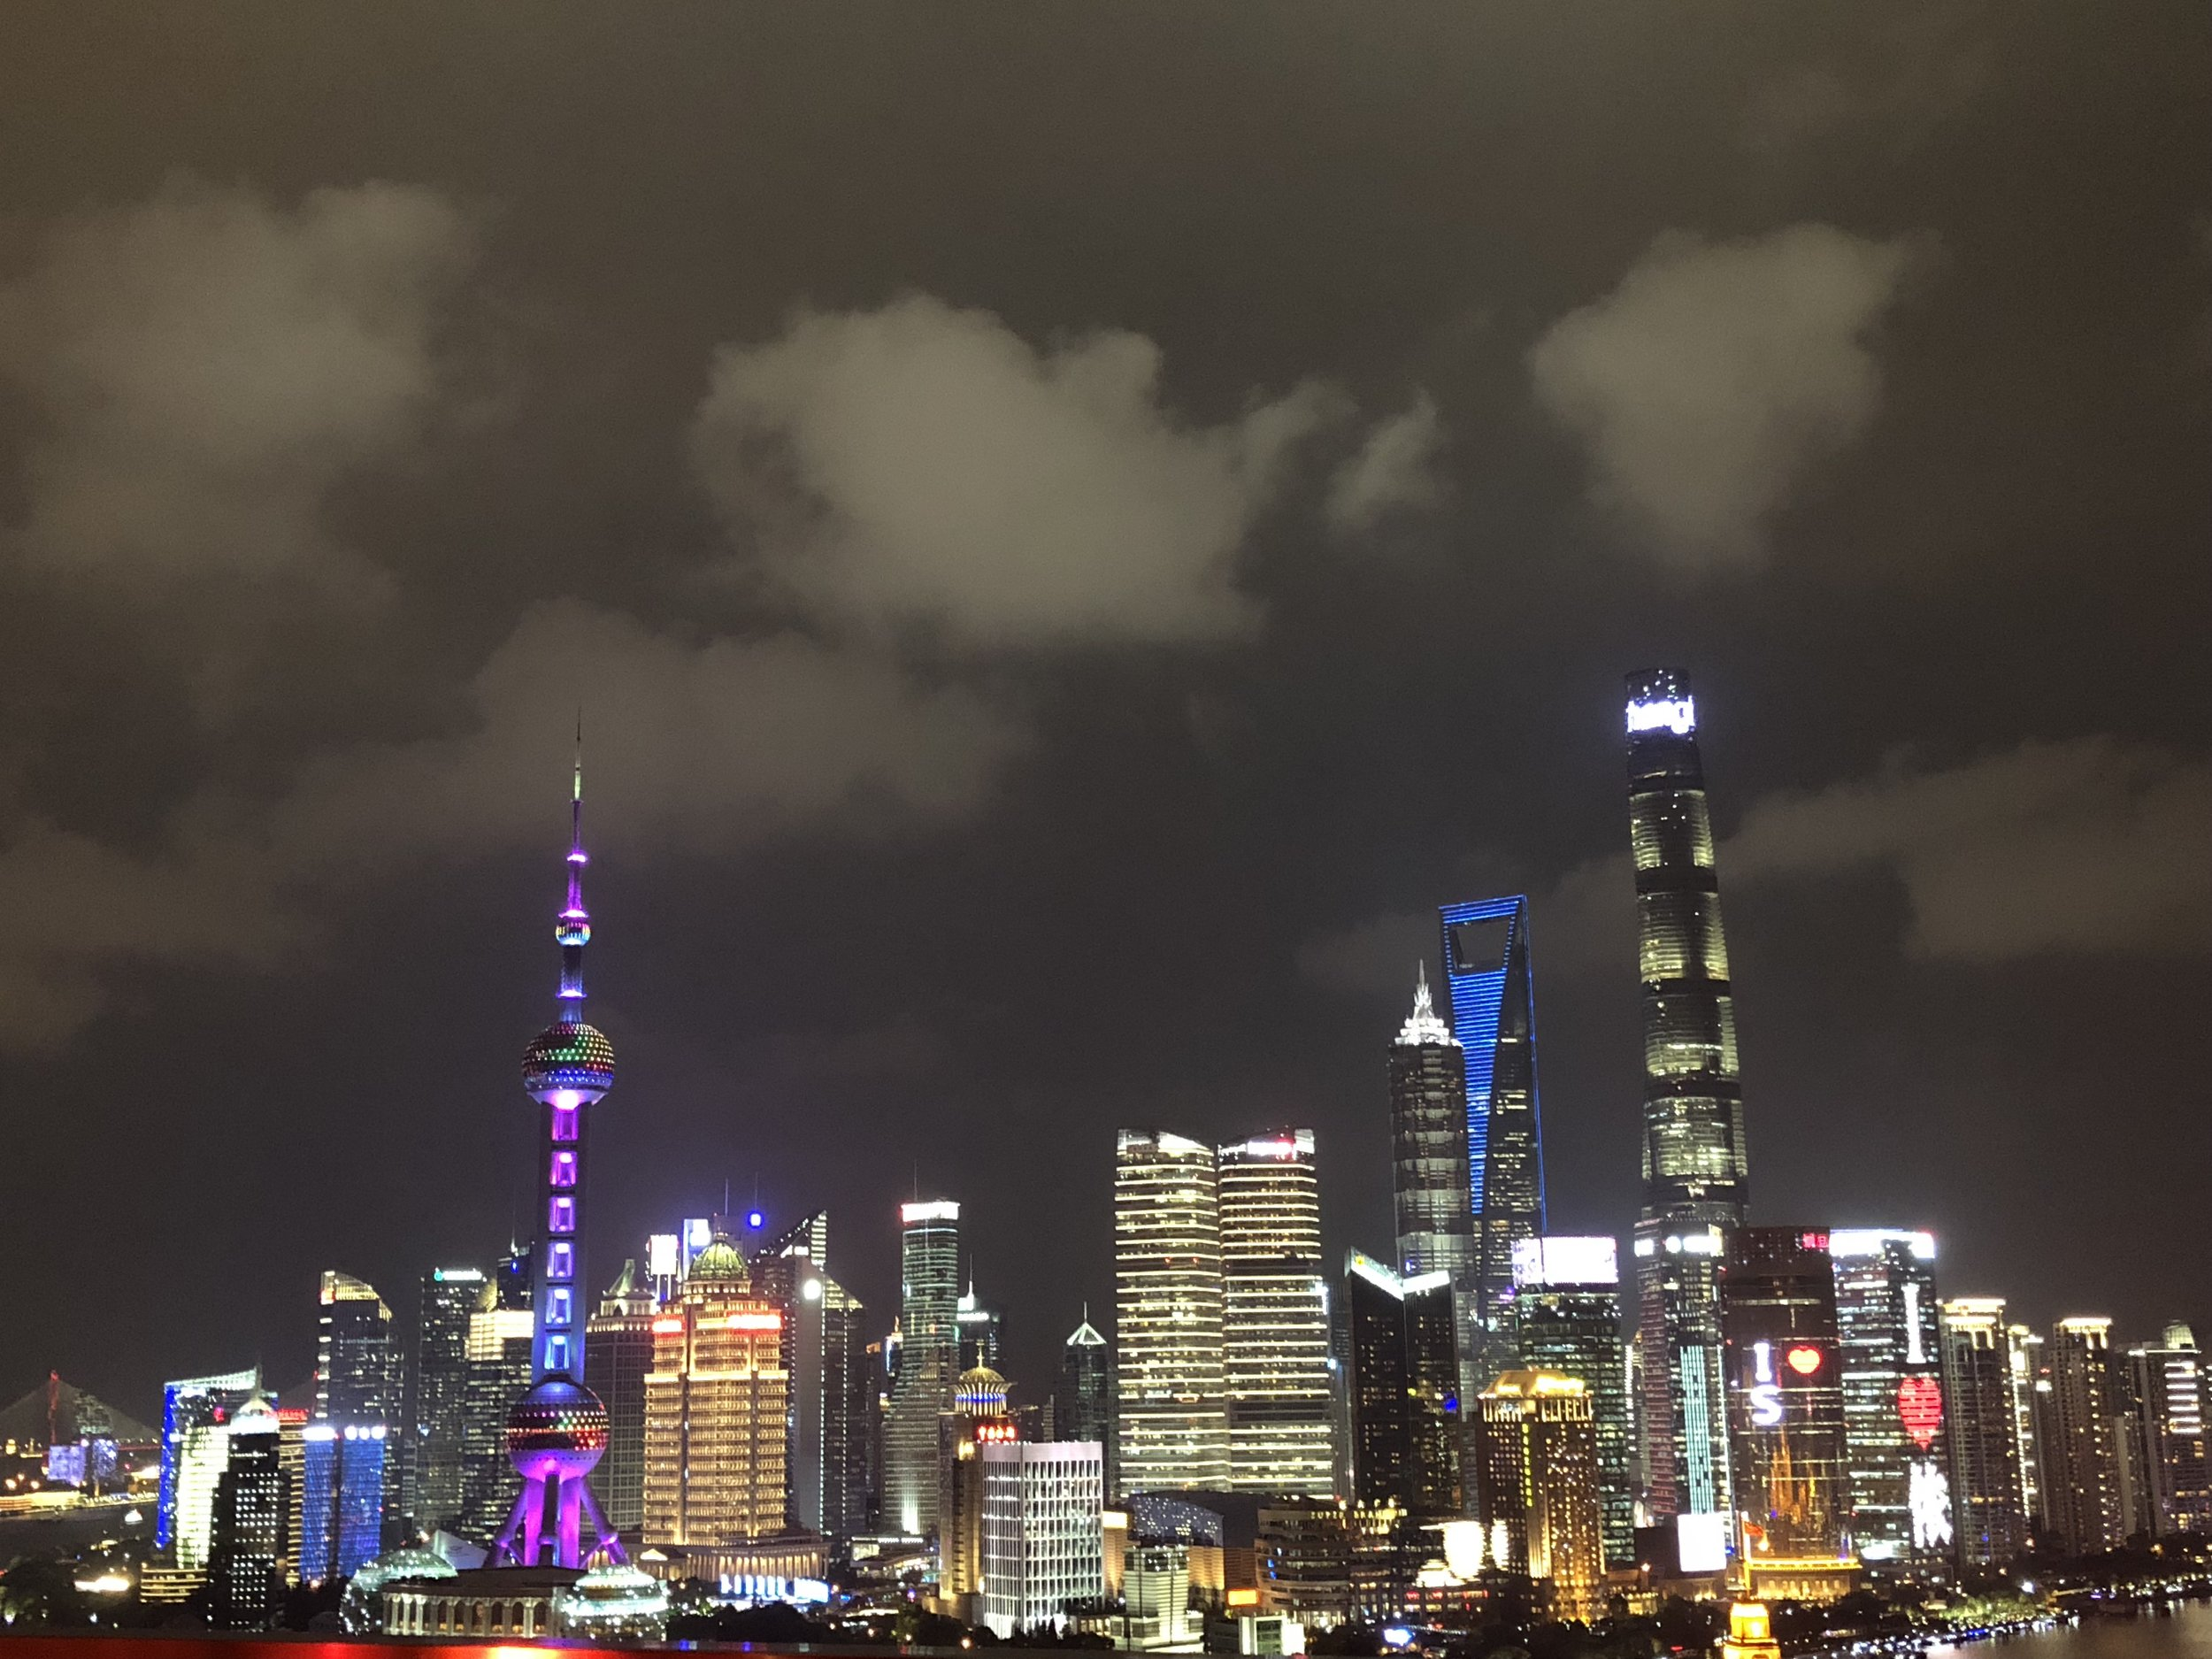 Shanghai, my home base from where I get to see SO many places!